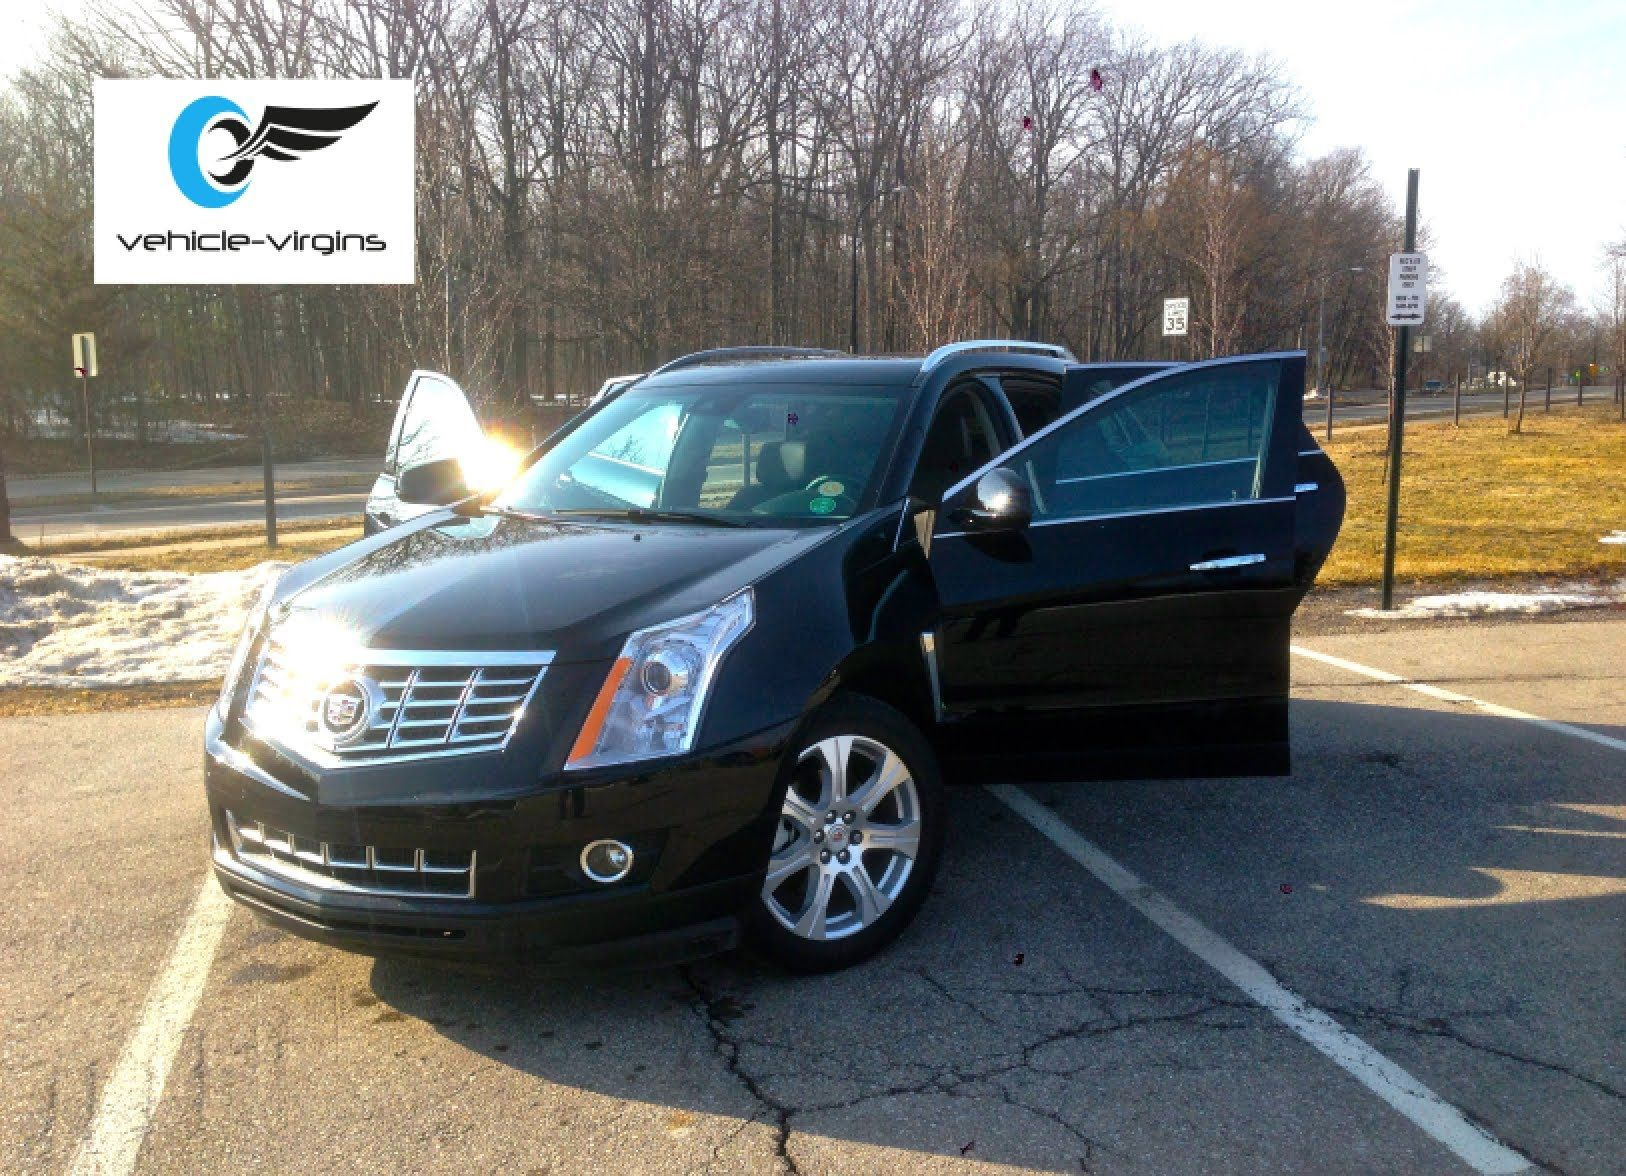 2014 Cadillac Srx Road Test And Review Cadillac Srx Pinterest